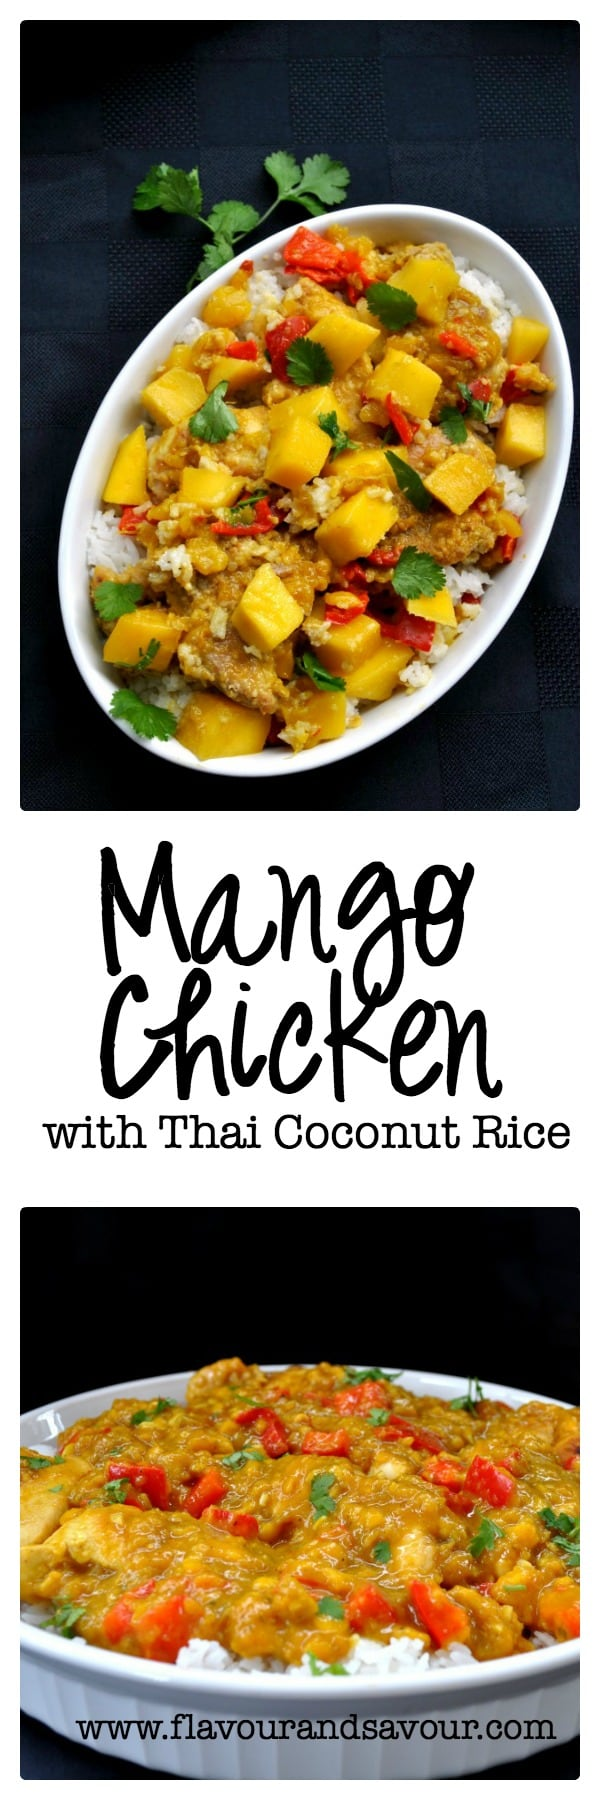 This Mango Chicken is a little sweet, a little spicy, a little sour, and a little salty, all in one mouthful. Perfectly balanced flavours make this an upscale chicken and rice dish. It's fancy enough for a dinner party but easy enough for a weeknight dinner. #thai #mango #chicken